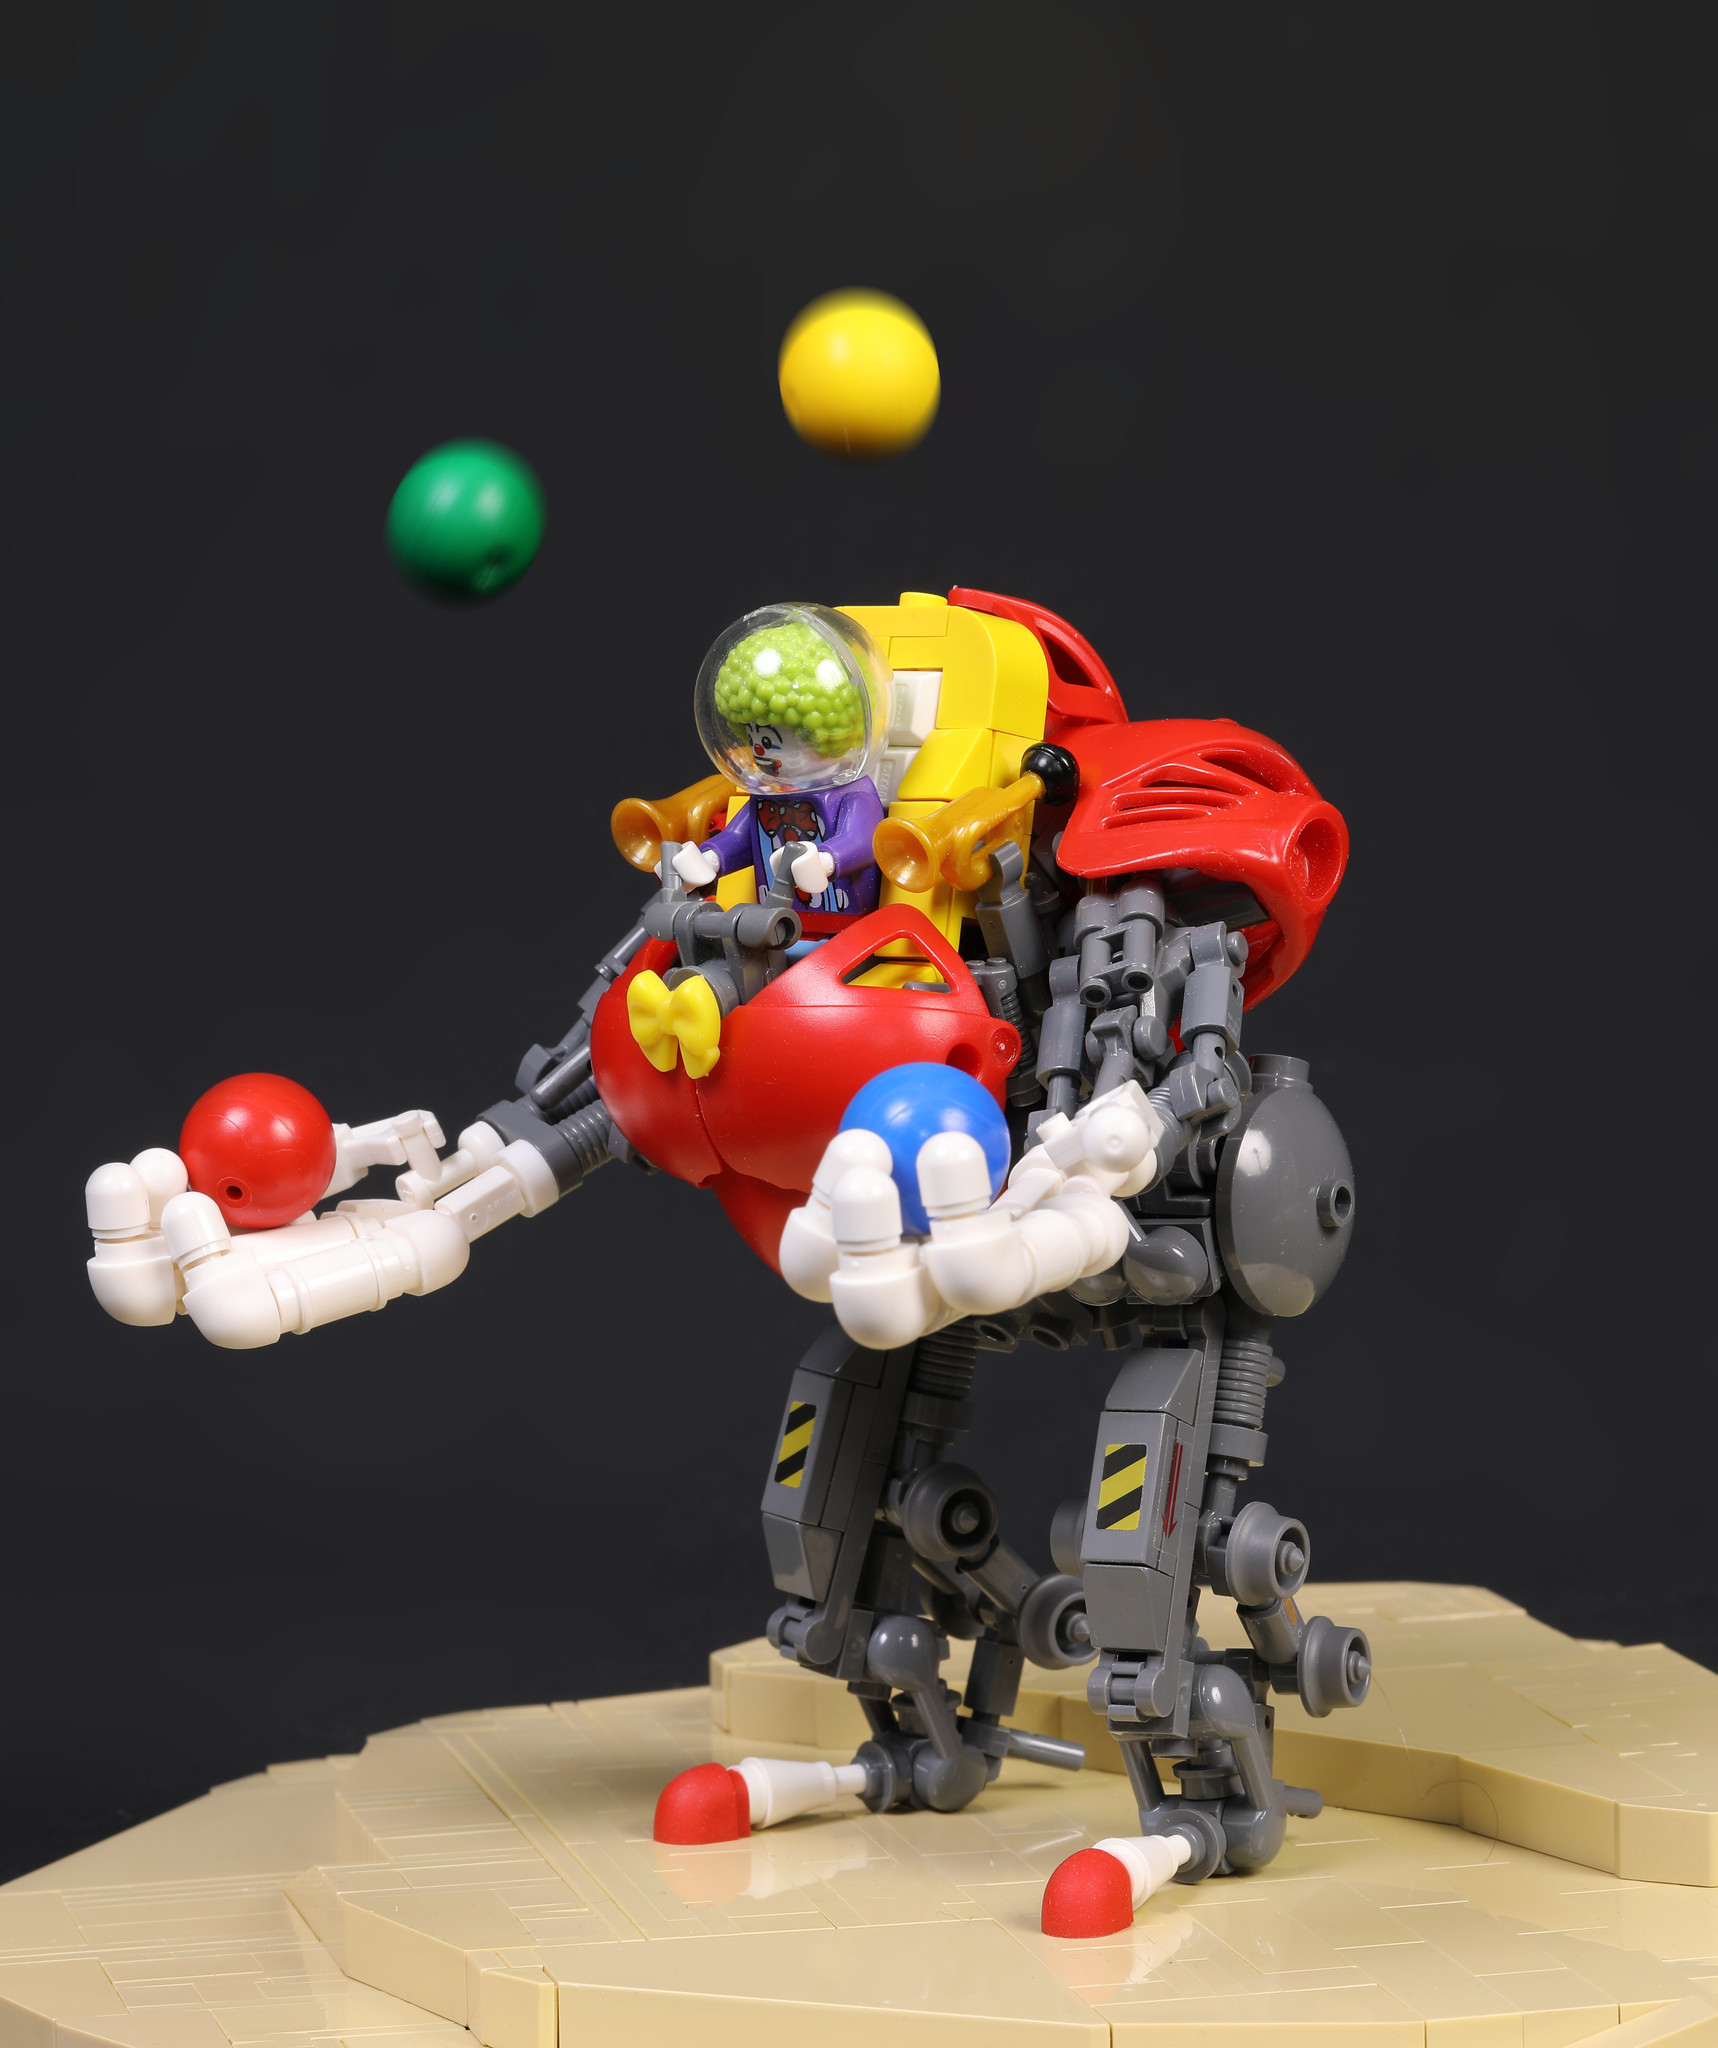 Spaceclowns: Jugglebot